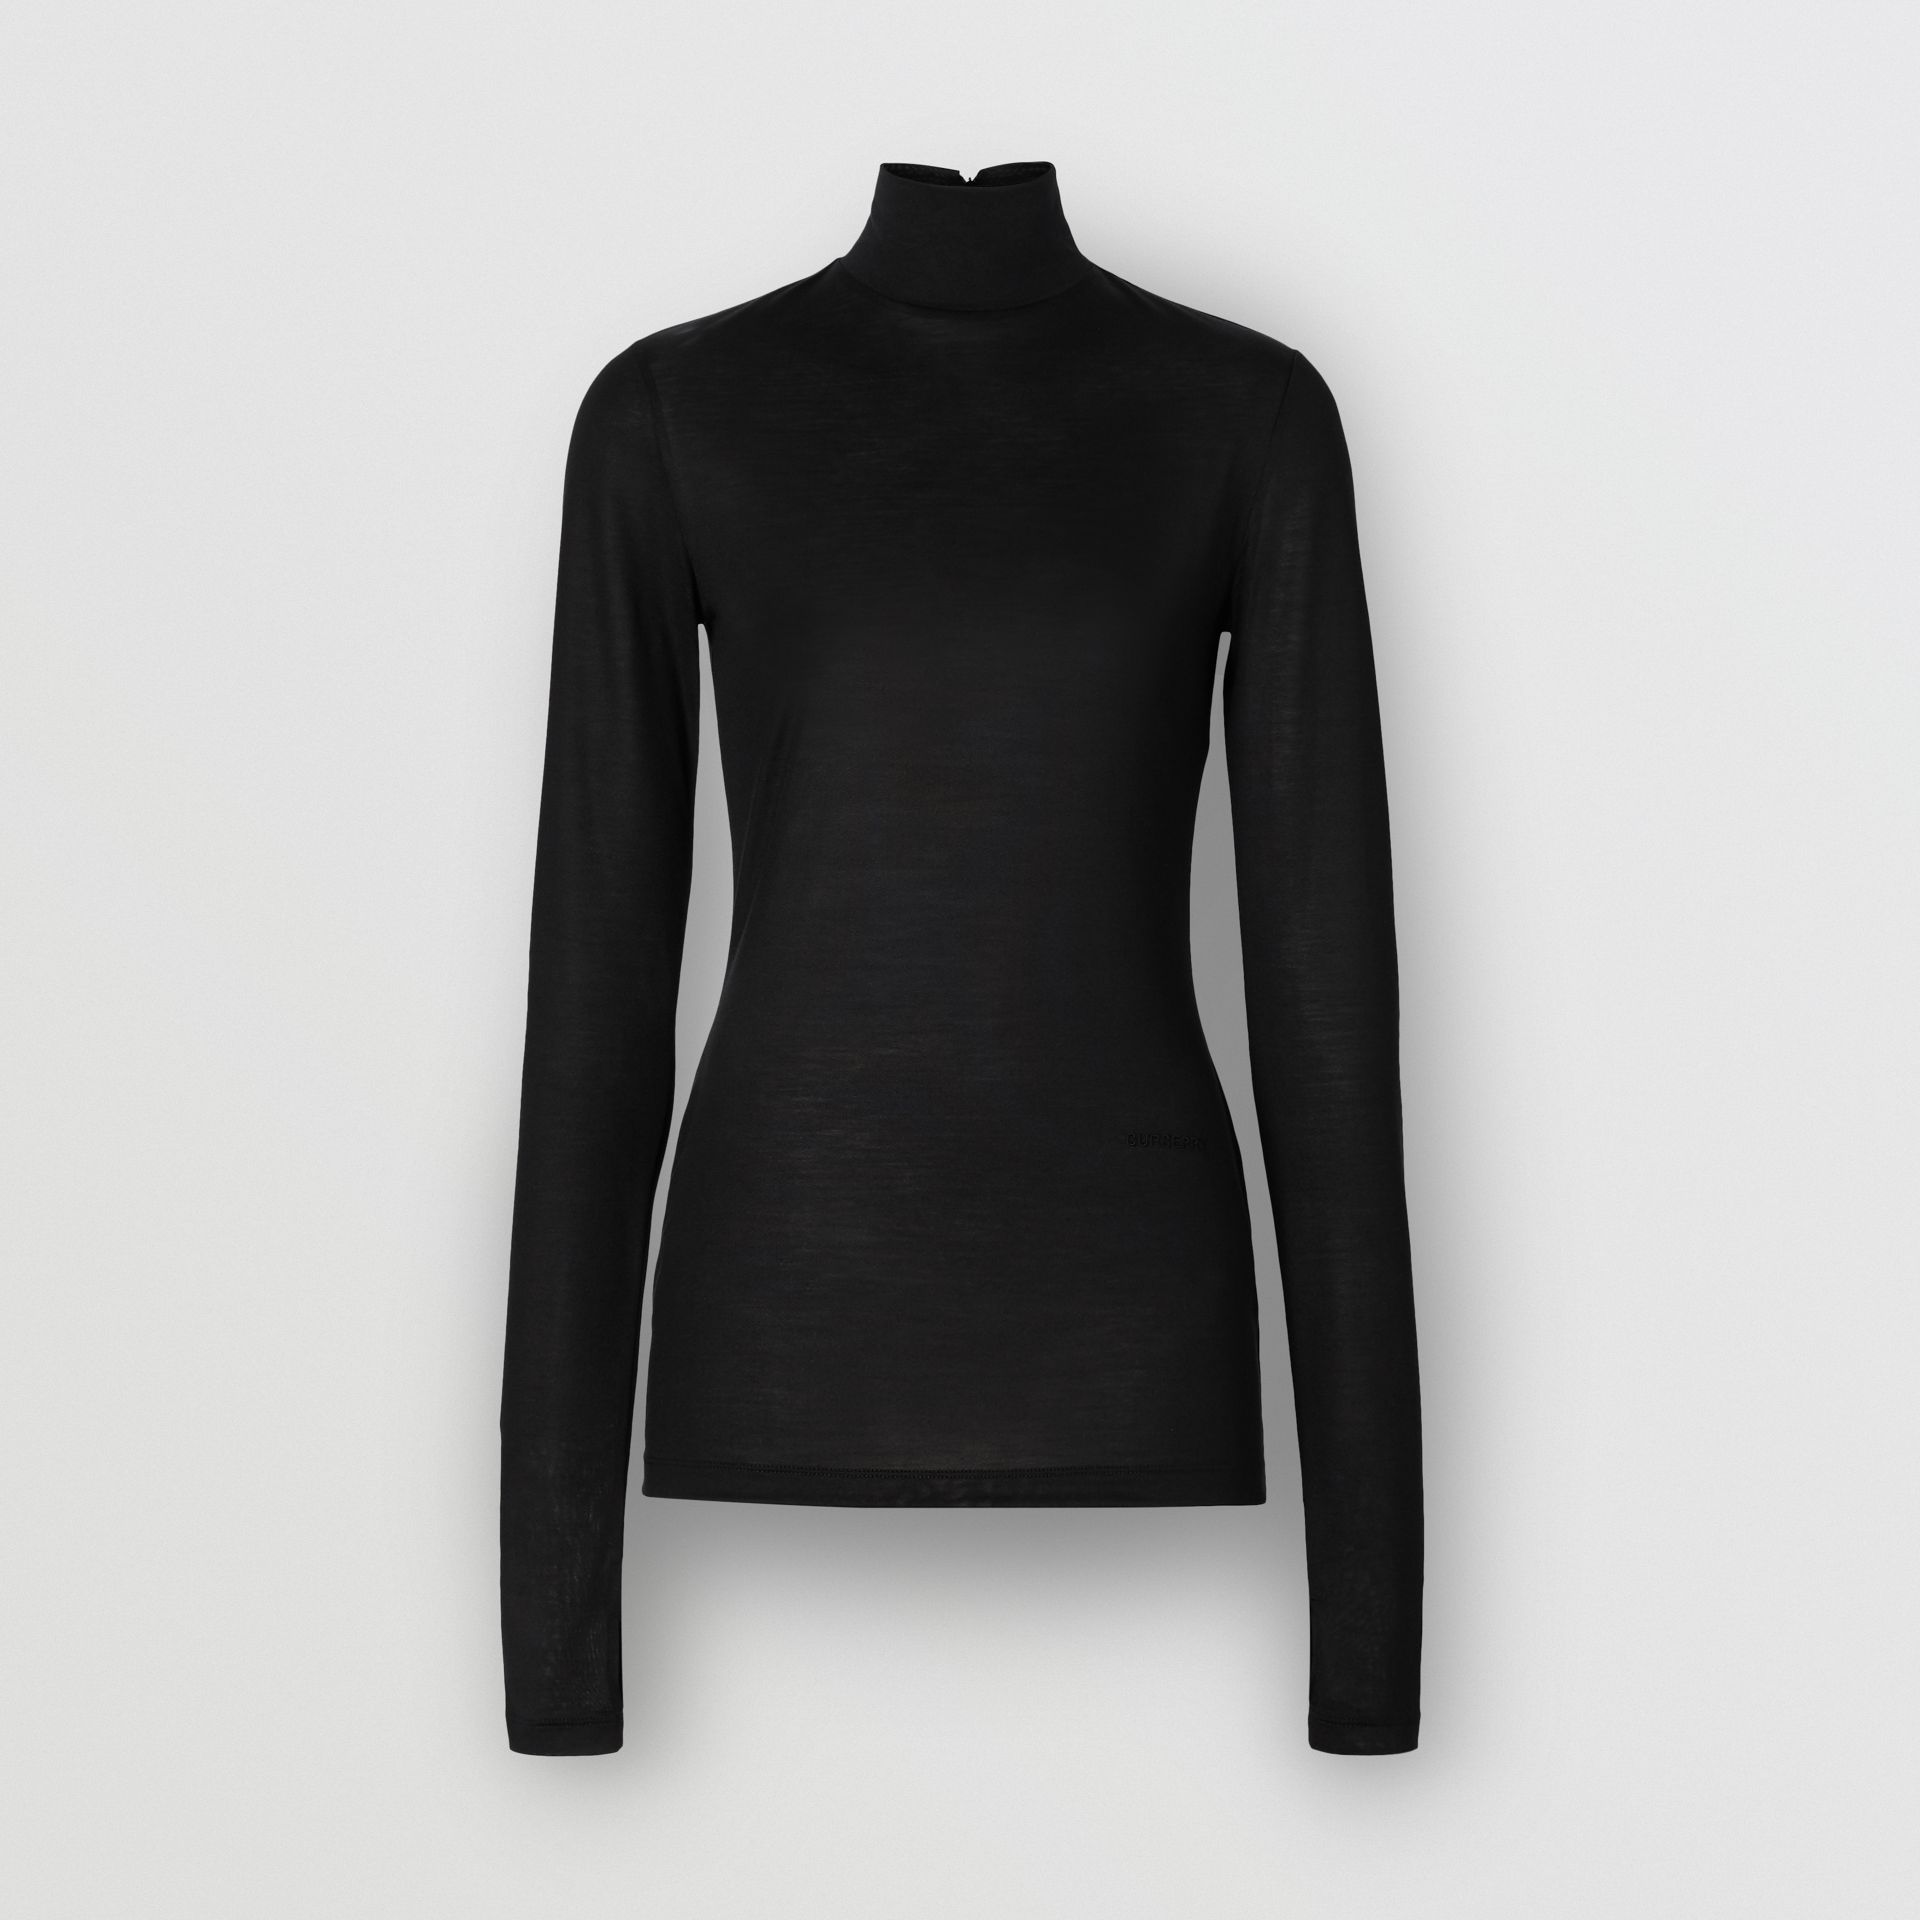 Silk Jersey Turtleneck Top in Black - Women | Burberry Australia - gallery image 3